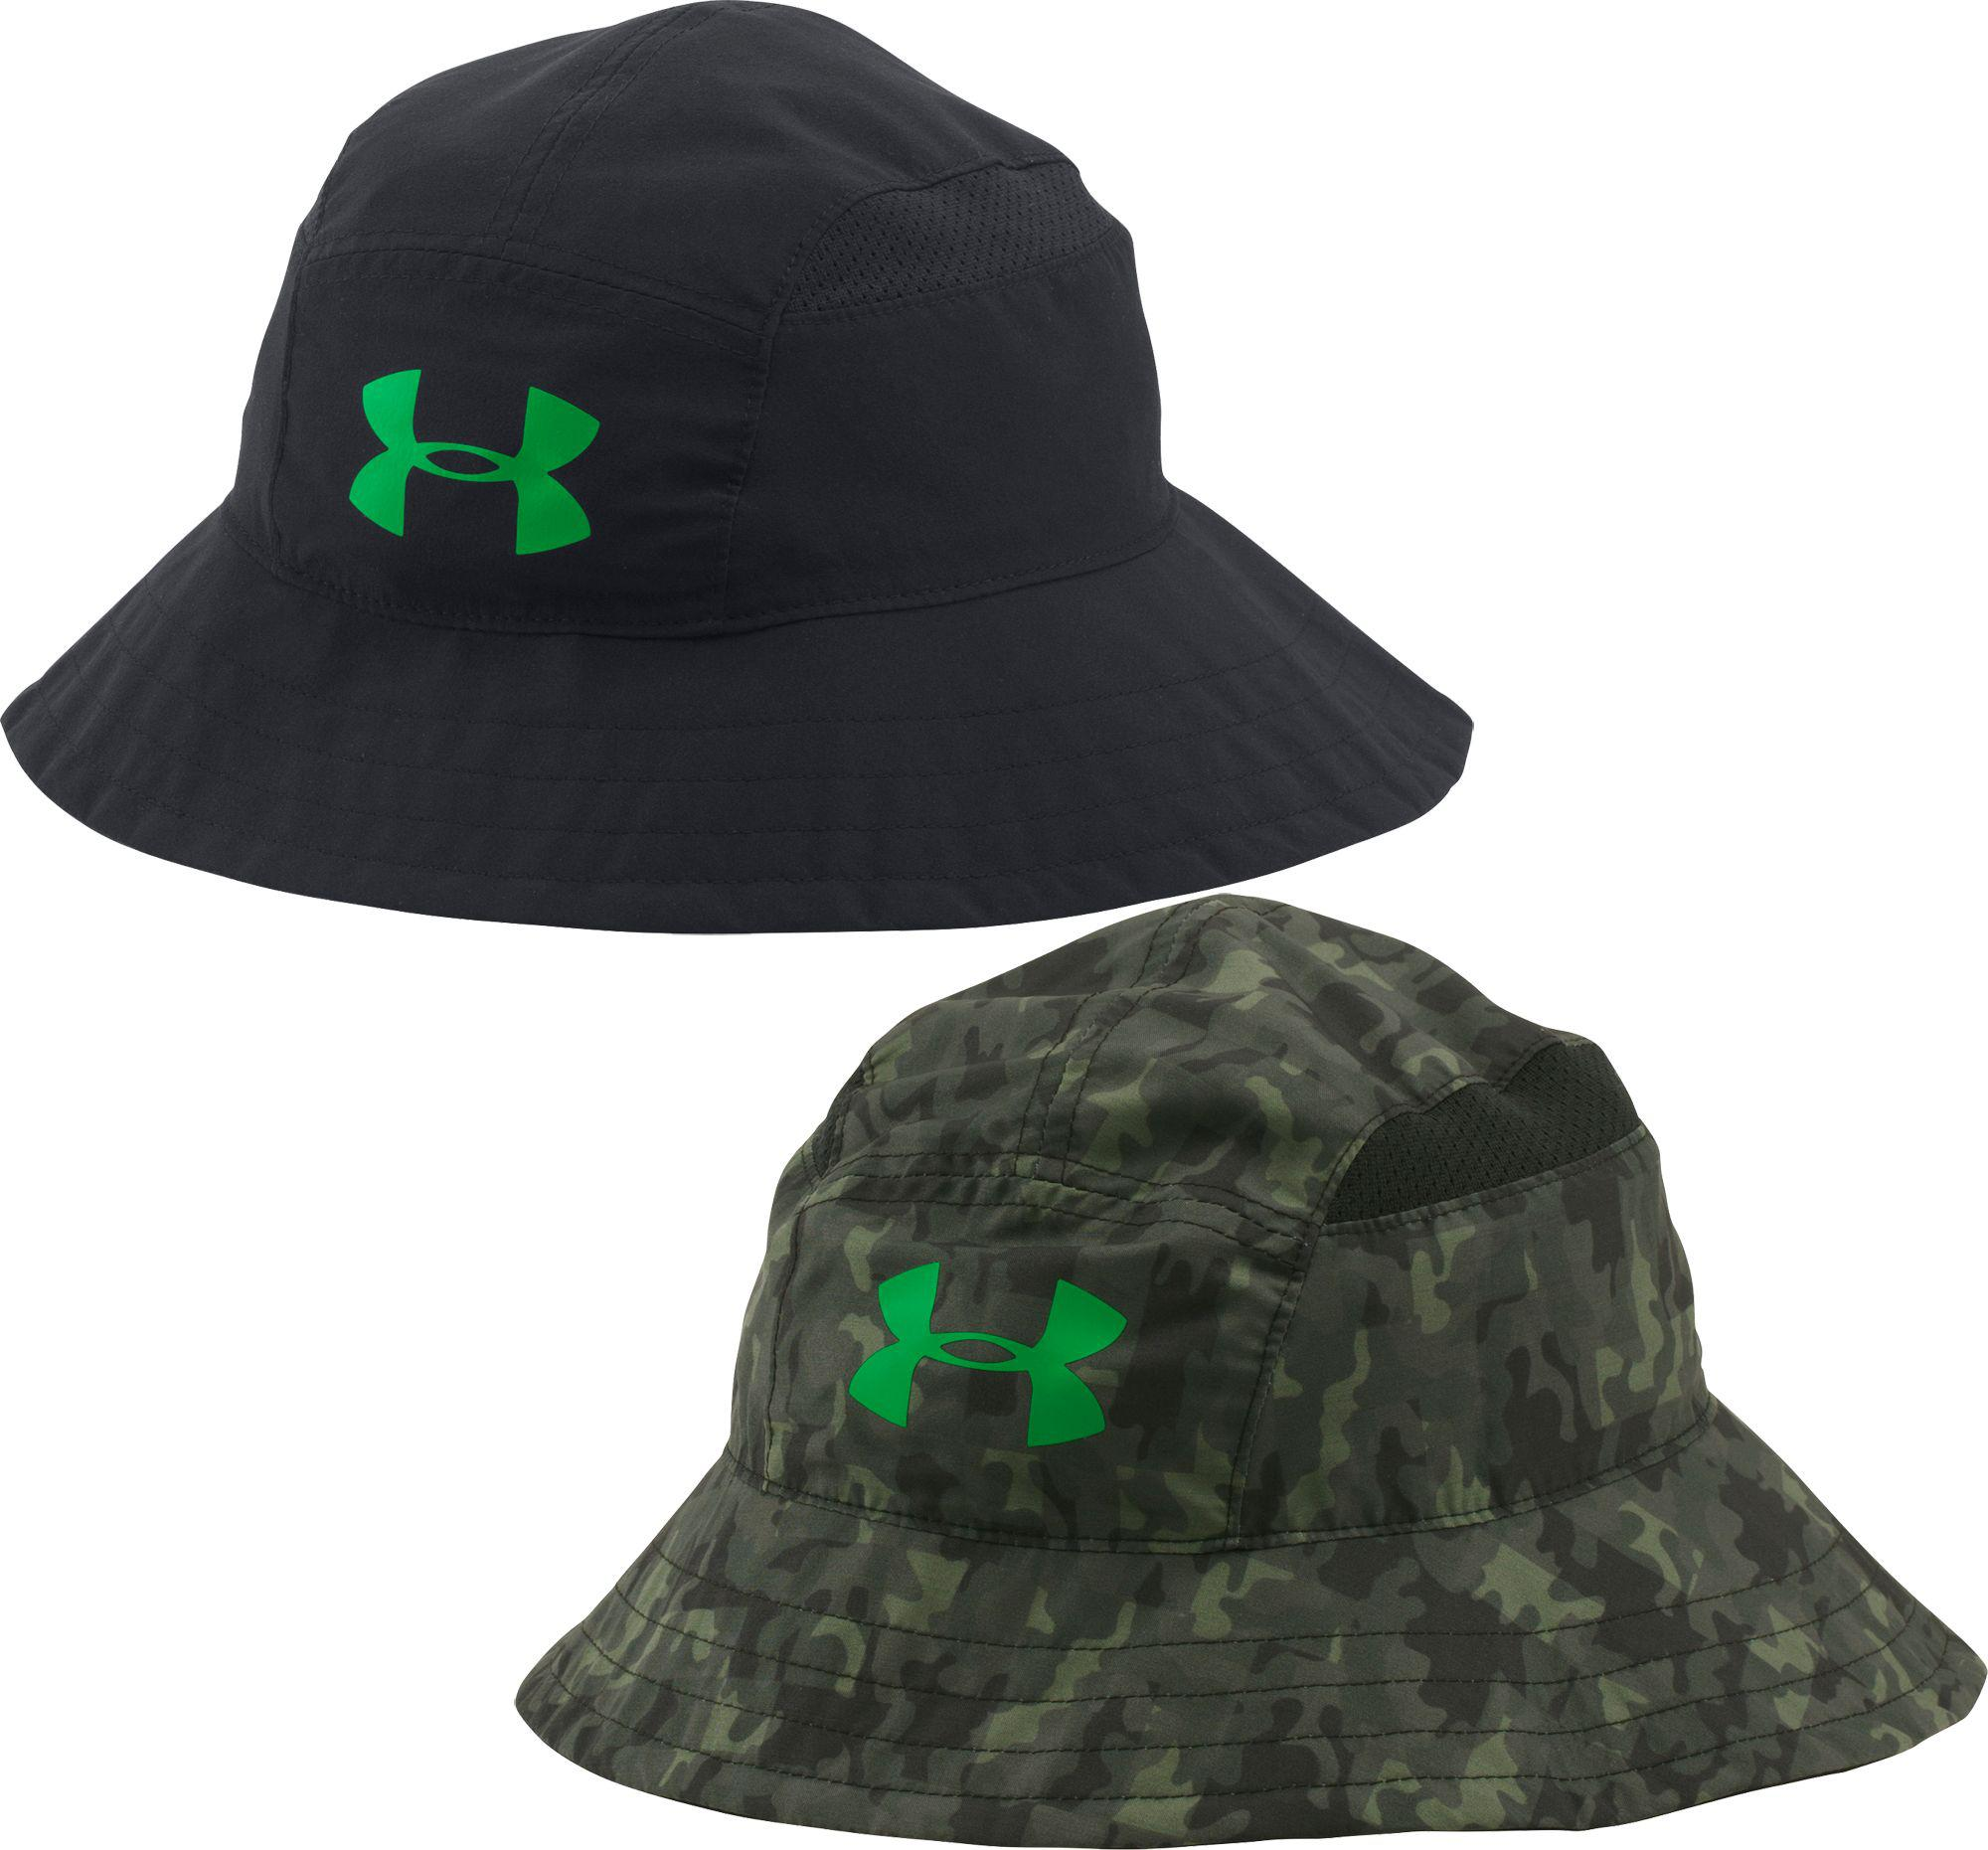 ... Lyst - Under Armour Oys Switchback Reversible Bucket Hat in Green ...  new arrivals ... 2c10e91c6b85